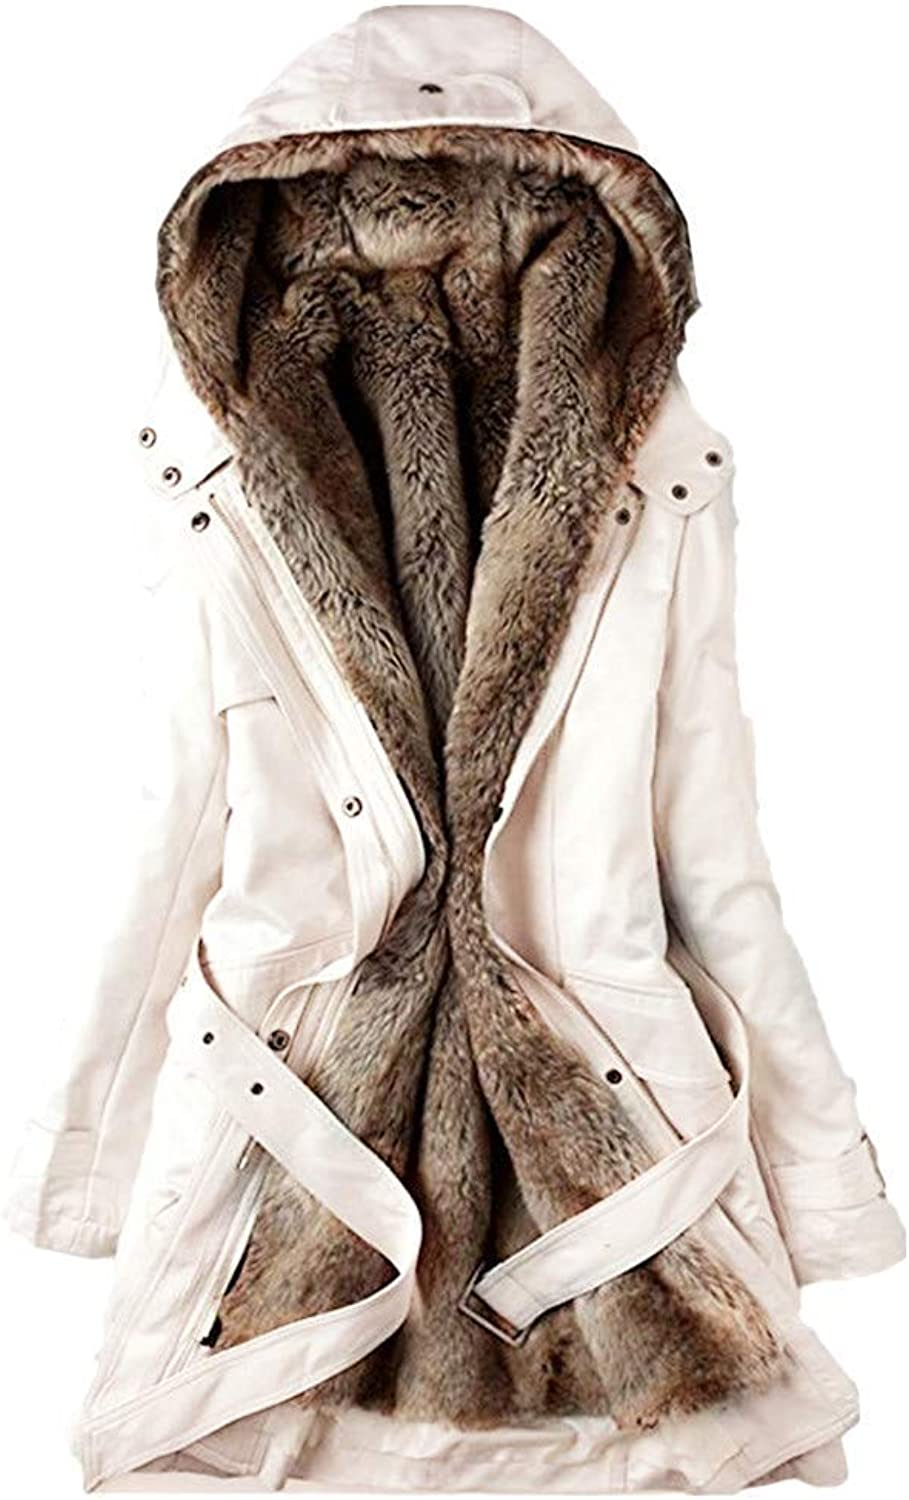 Bon Soir Ladies Winter Warm Thick Long Jacket Fur Lining Coat Womens Hooded Parka Coat